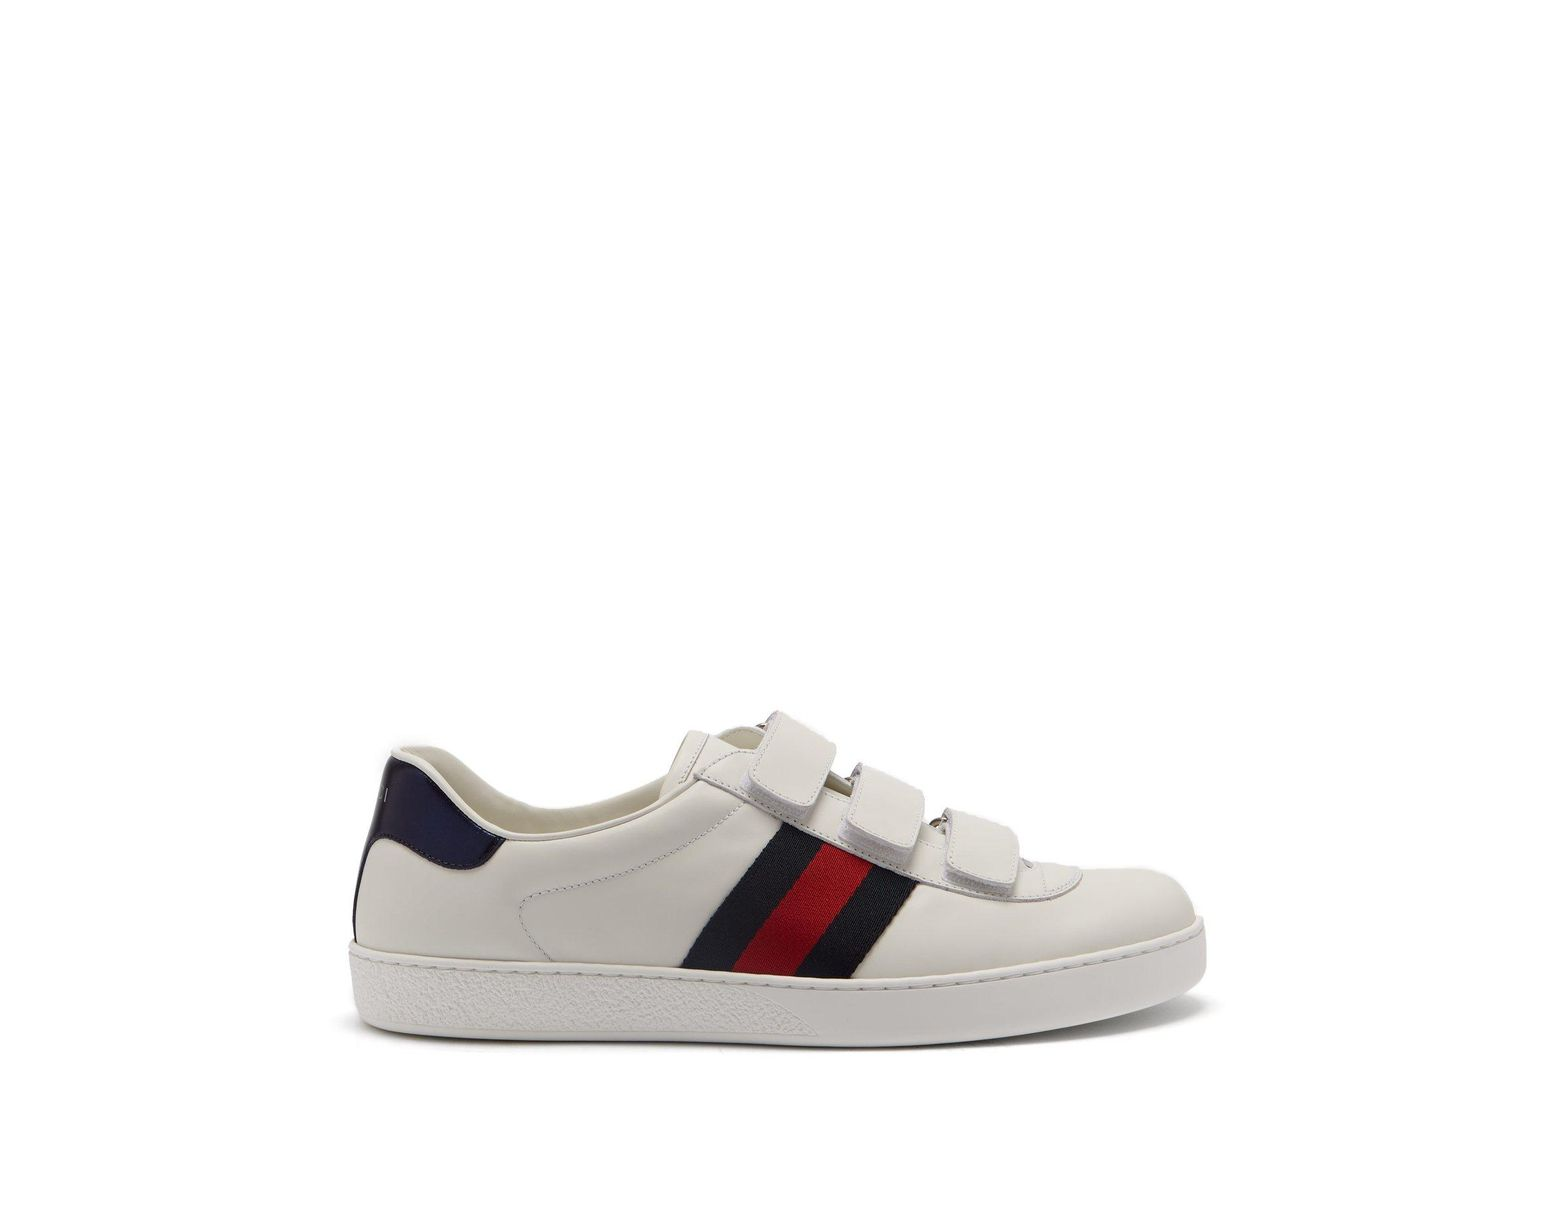 2594c8f1d Gucci New Ace Web Stripe Low Top Leather Trainers in White for Men - Lyst